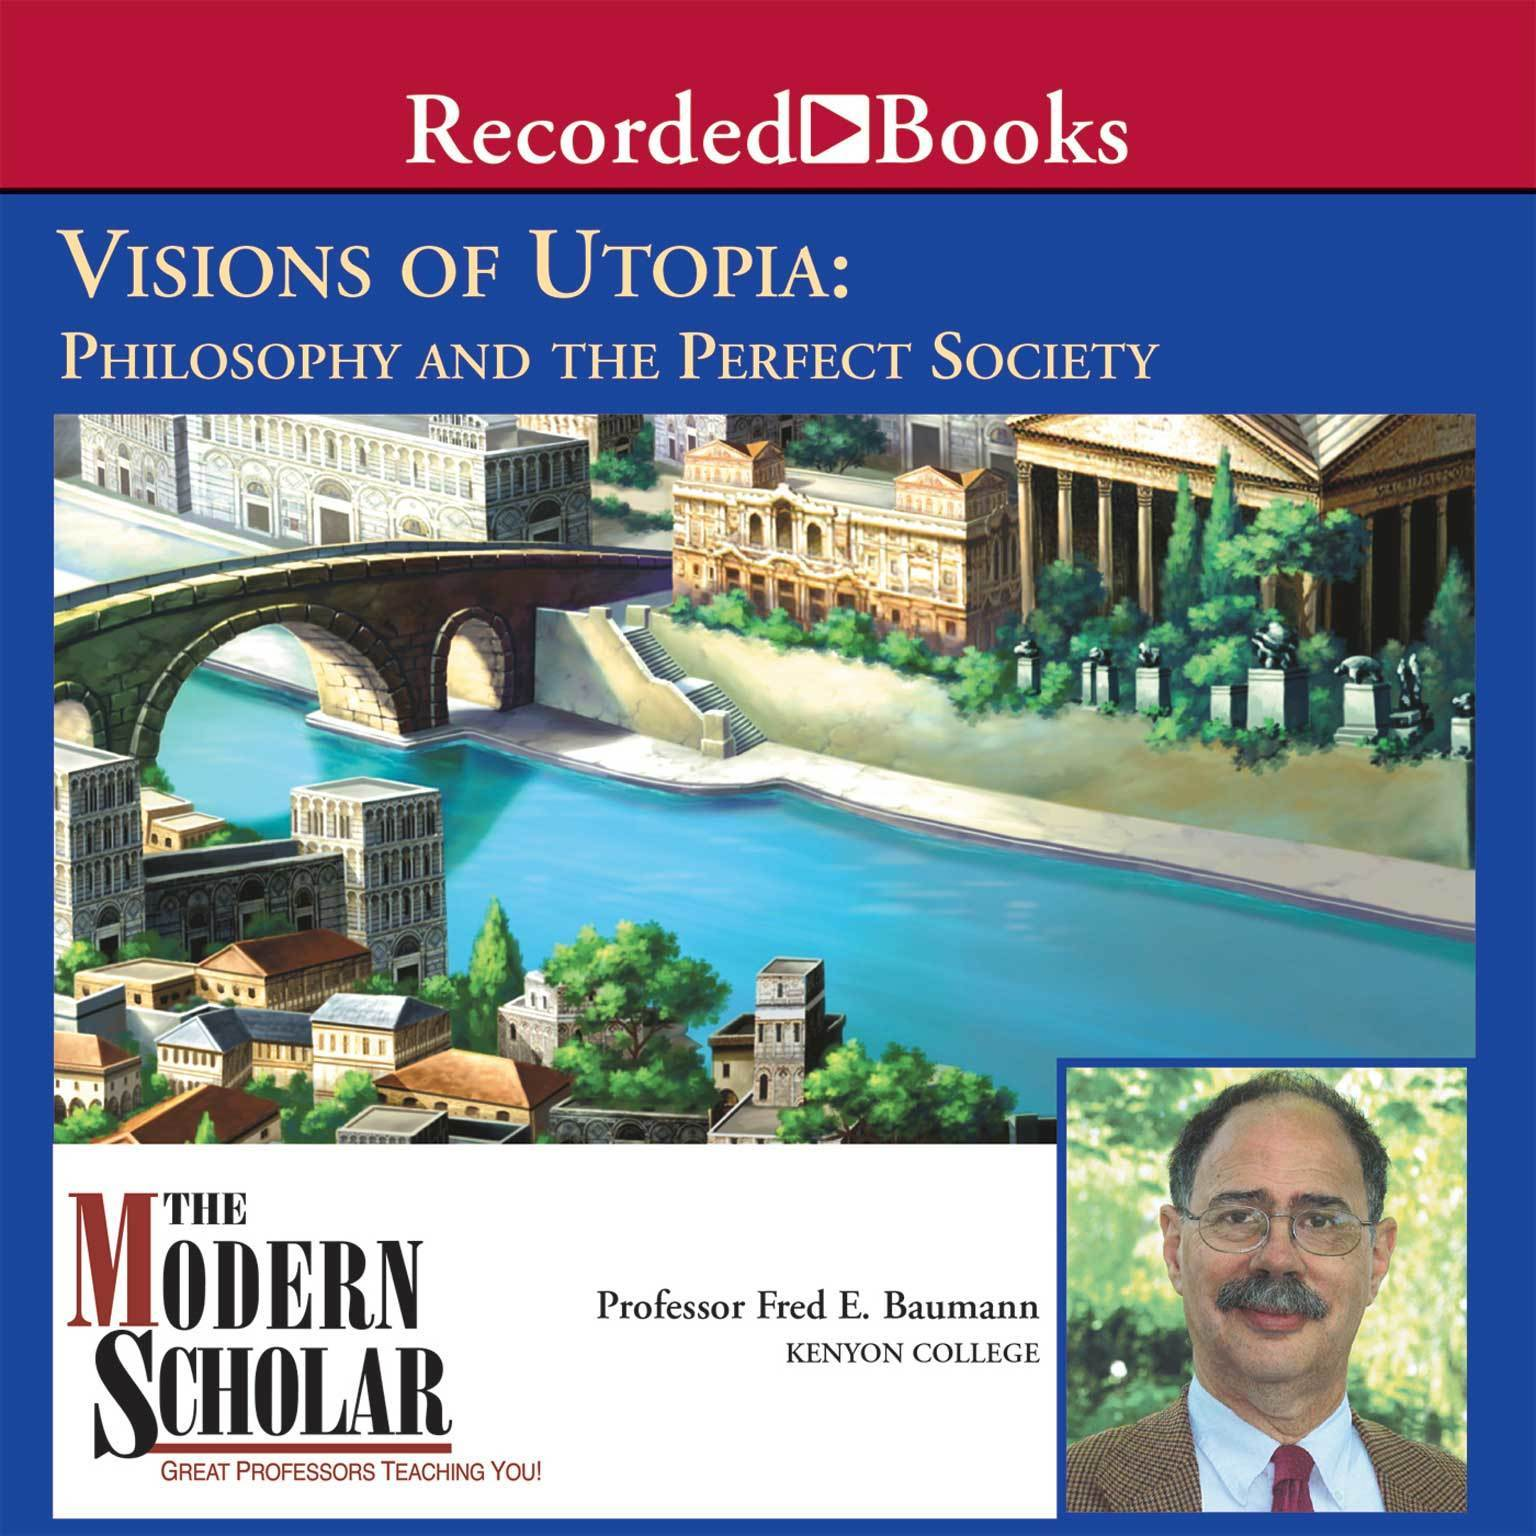 a perception of utopia a visionary system of social and political perfection The perception of utopia is quite different which consists of social and political perfection everyone in utopia was happy with their system.